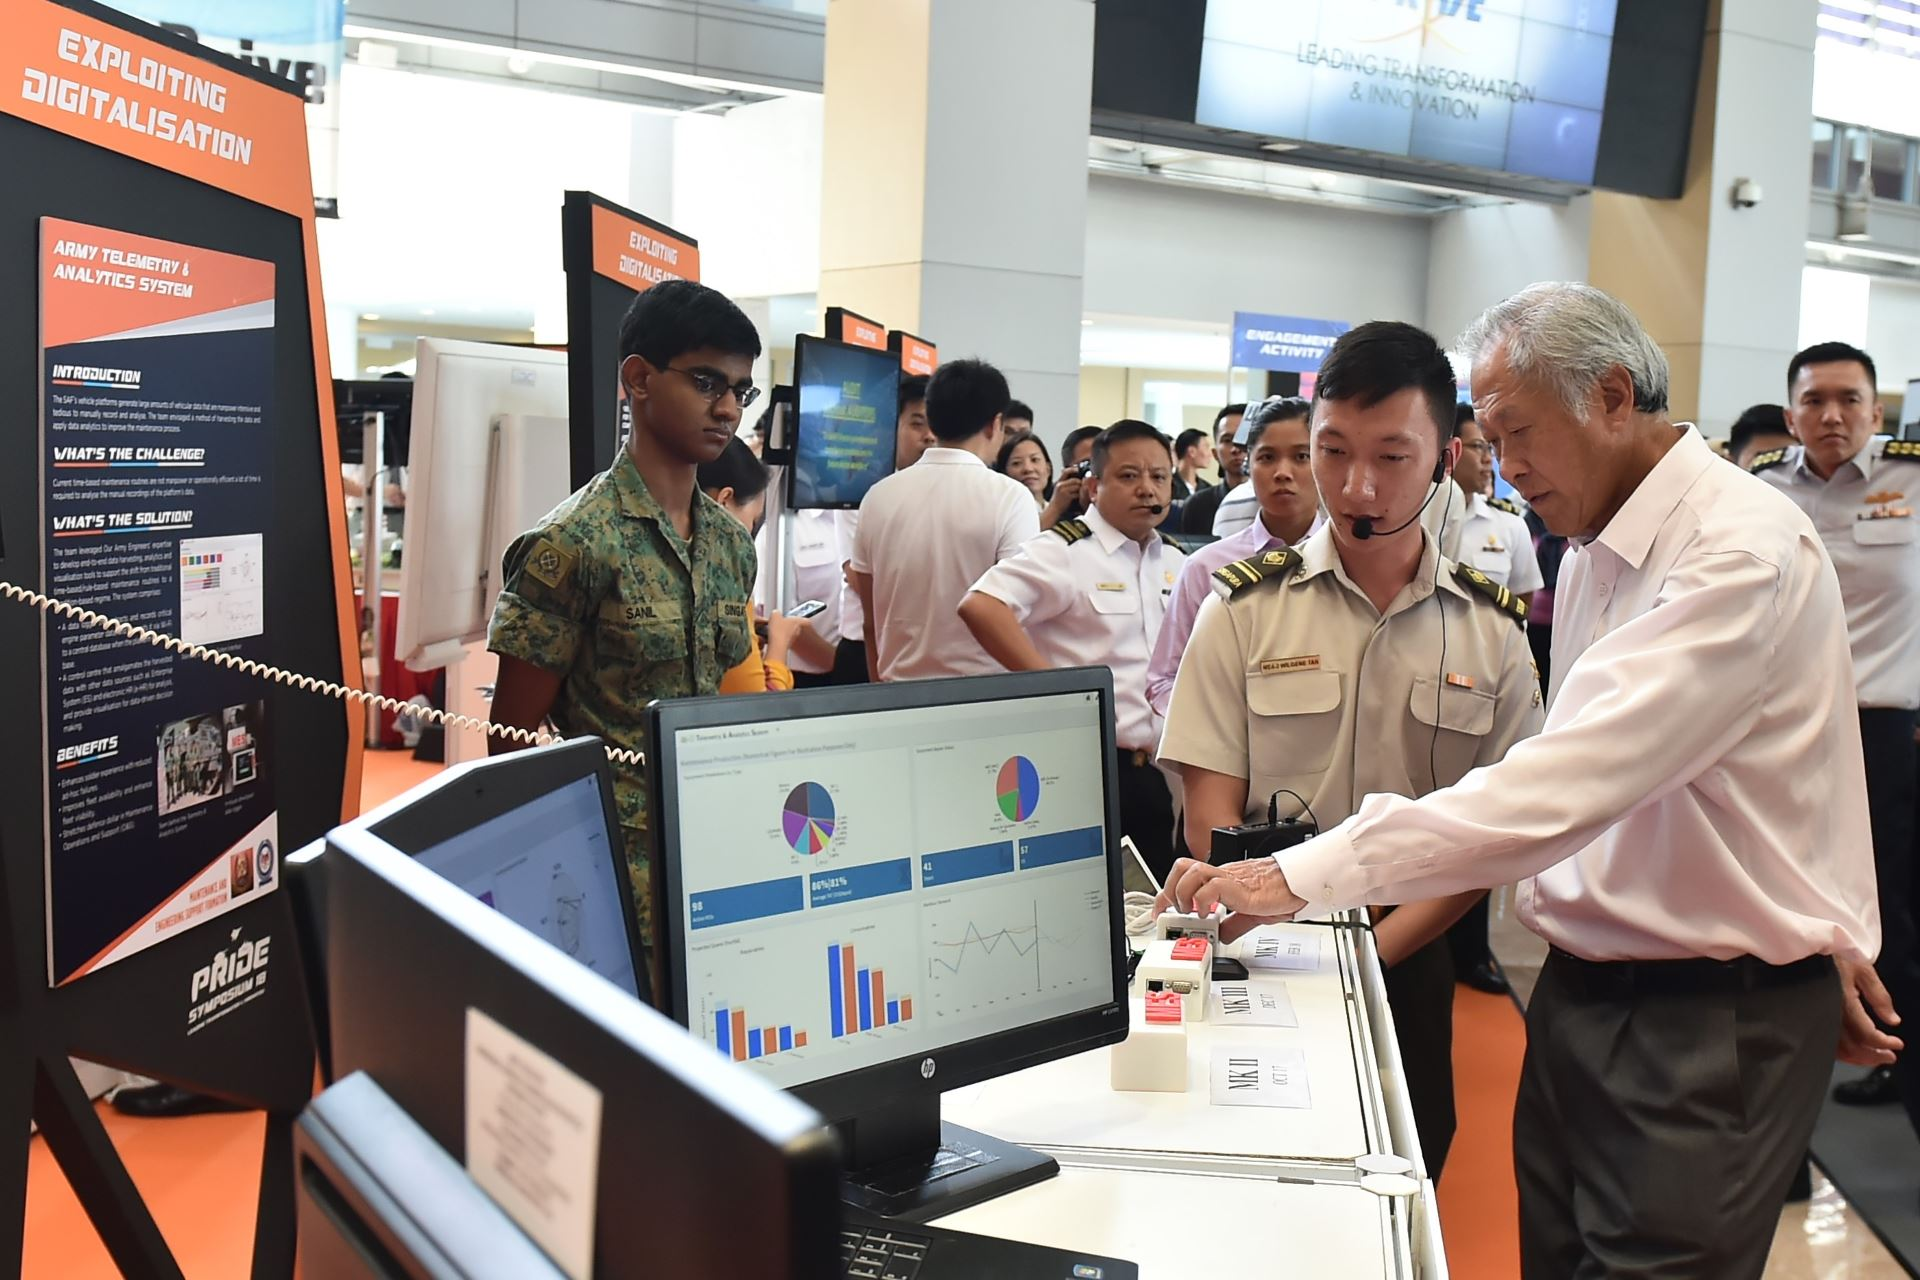 Dr Ng (right) viewing a display of the Army Telemetry and Analytics System during his tour of the PRIDE Symposium 2018 exhibition.